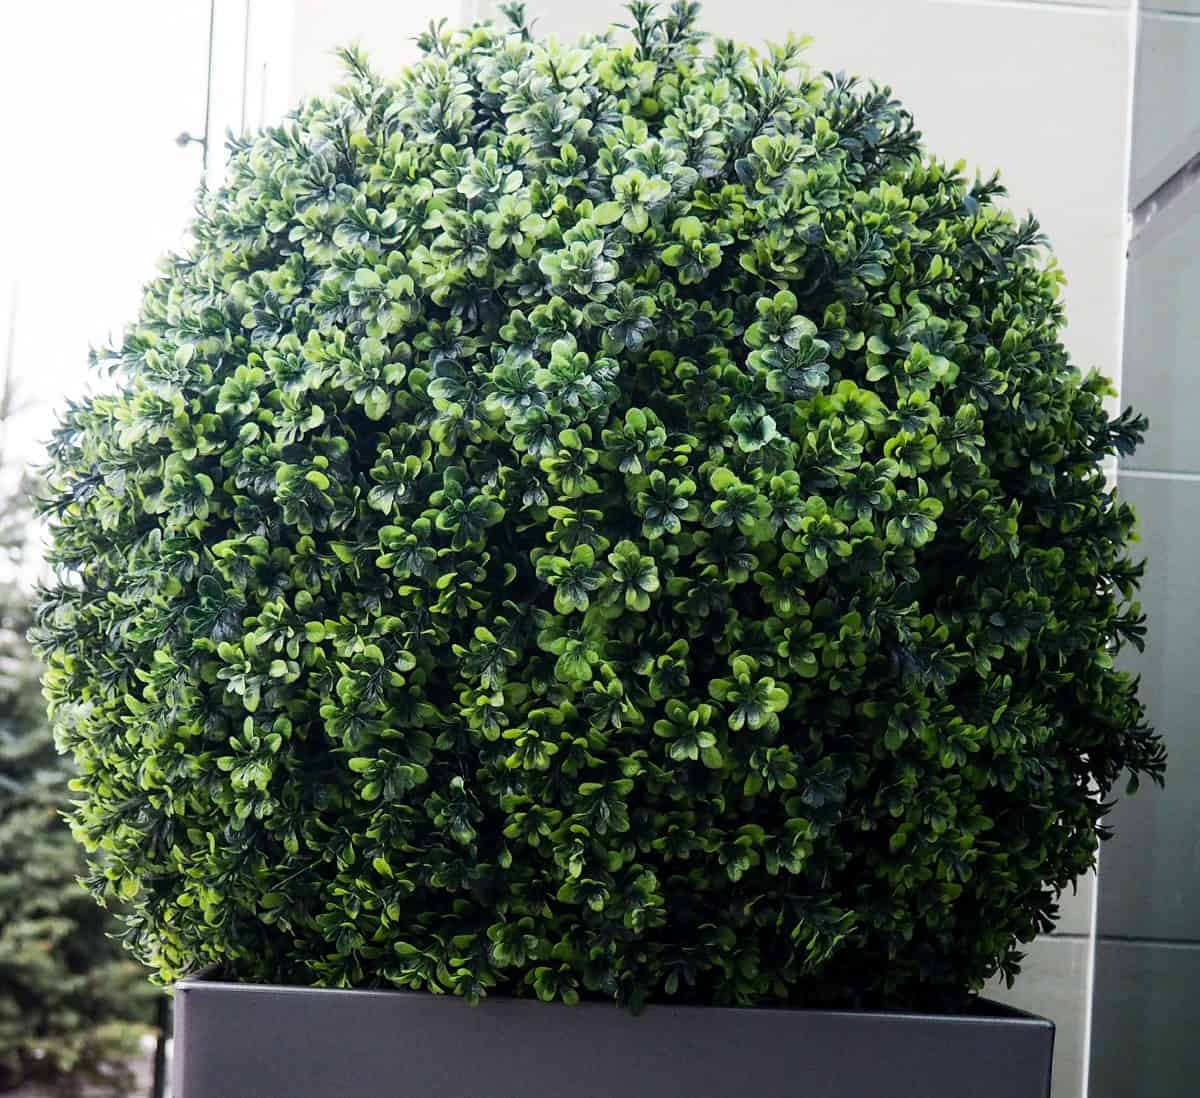 The lush greenery of the green mountain boxwood lasts all year round.